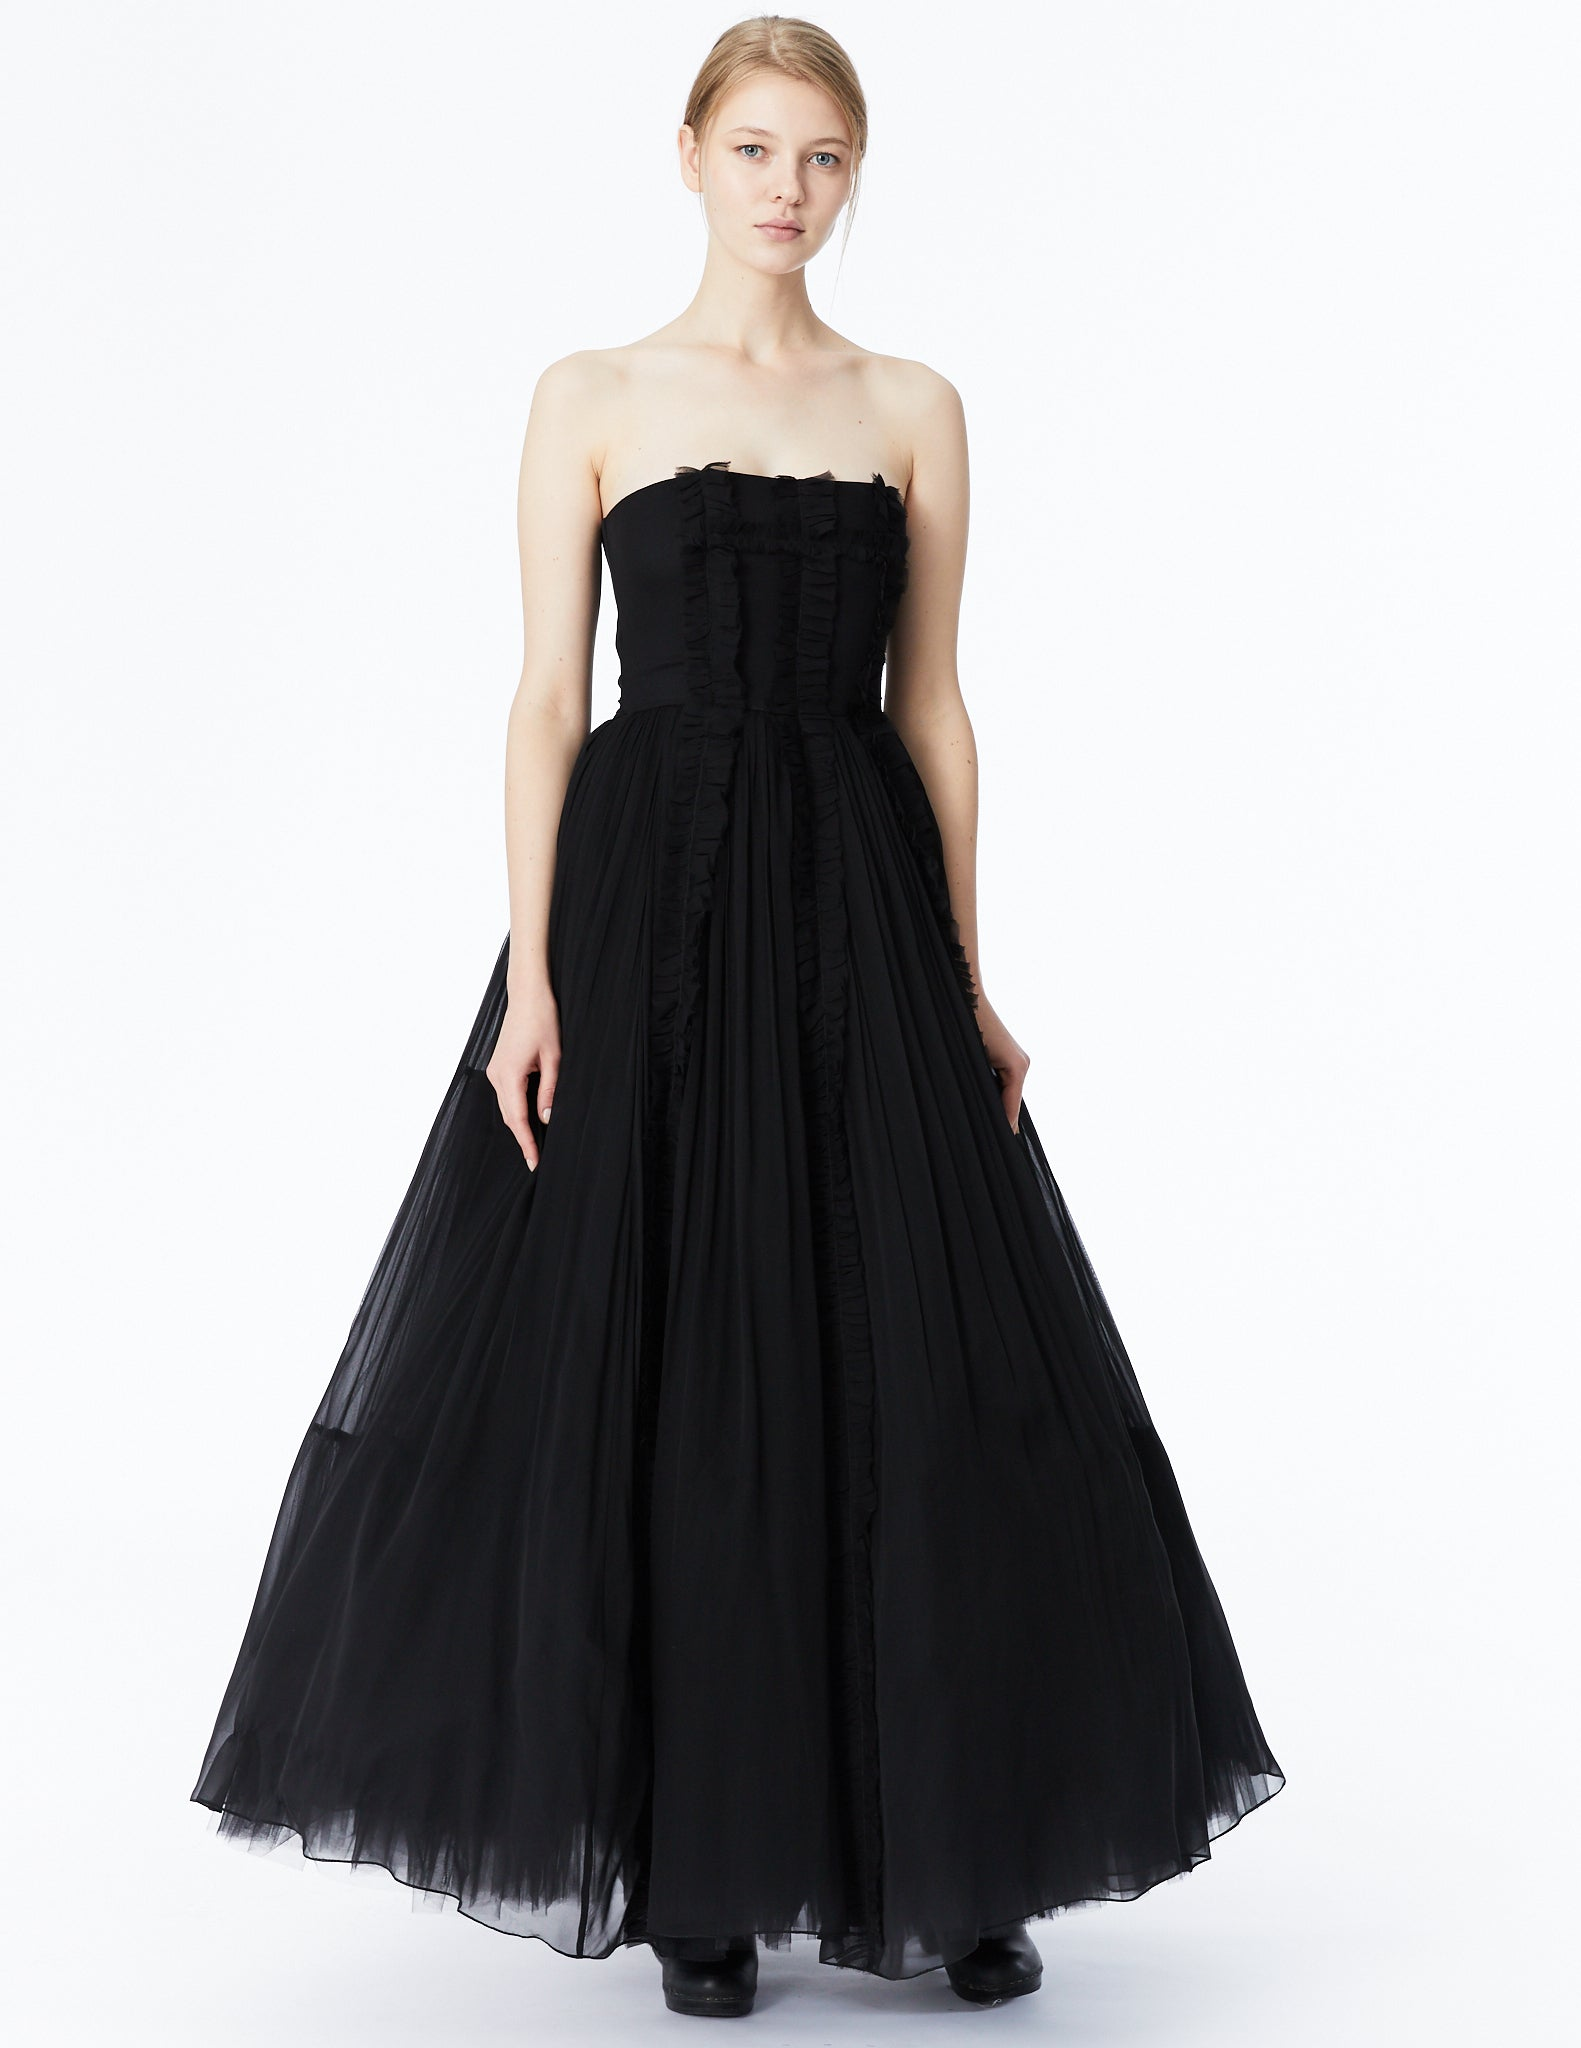 morgane le fay strapless ballgown with mini ruffle applique on bodice and full crinoline skirt.